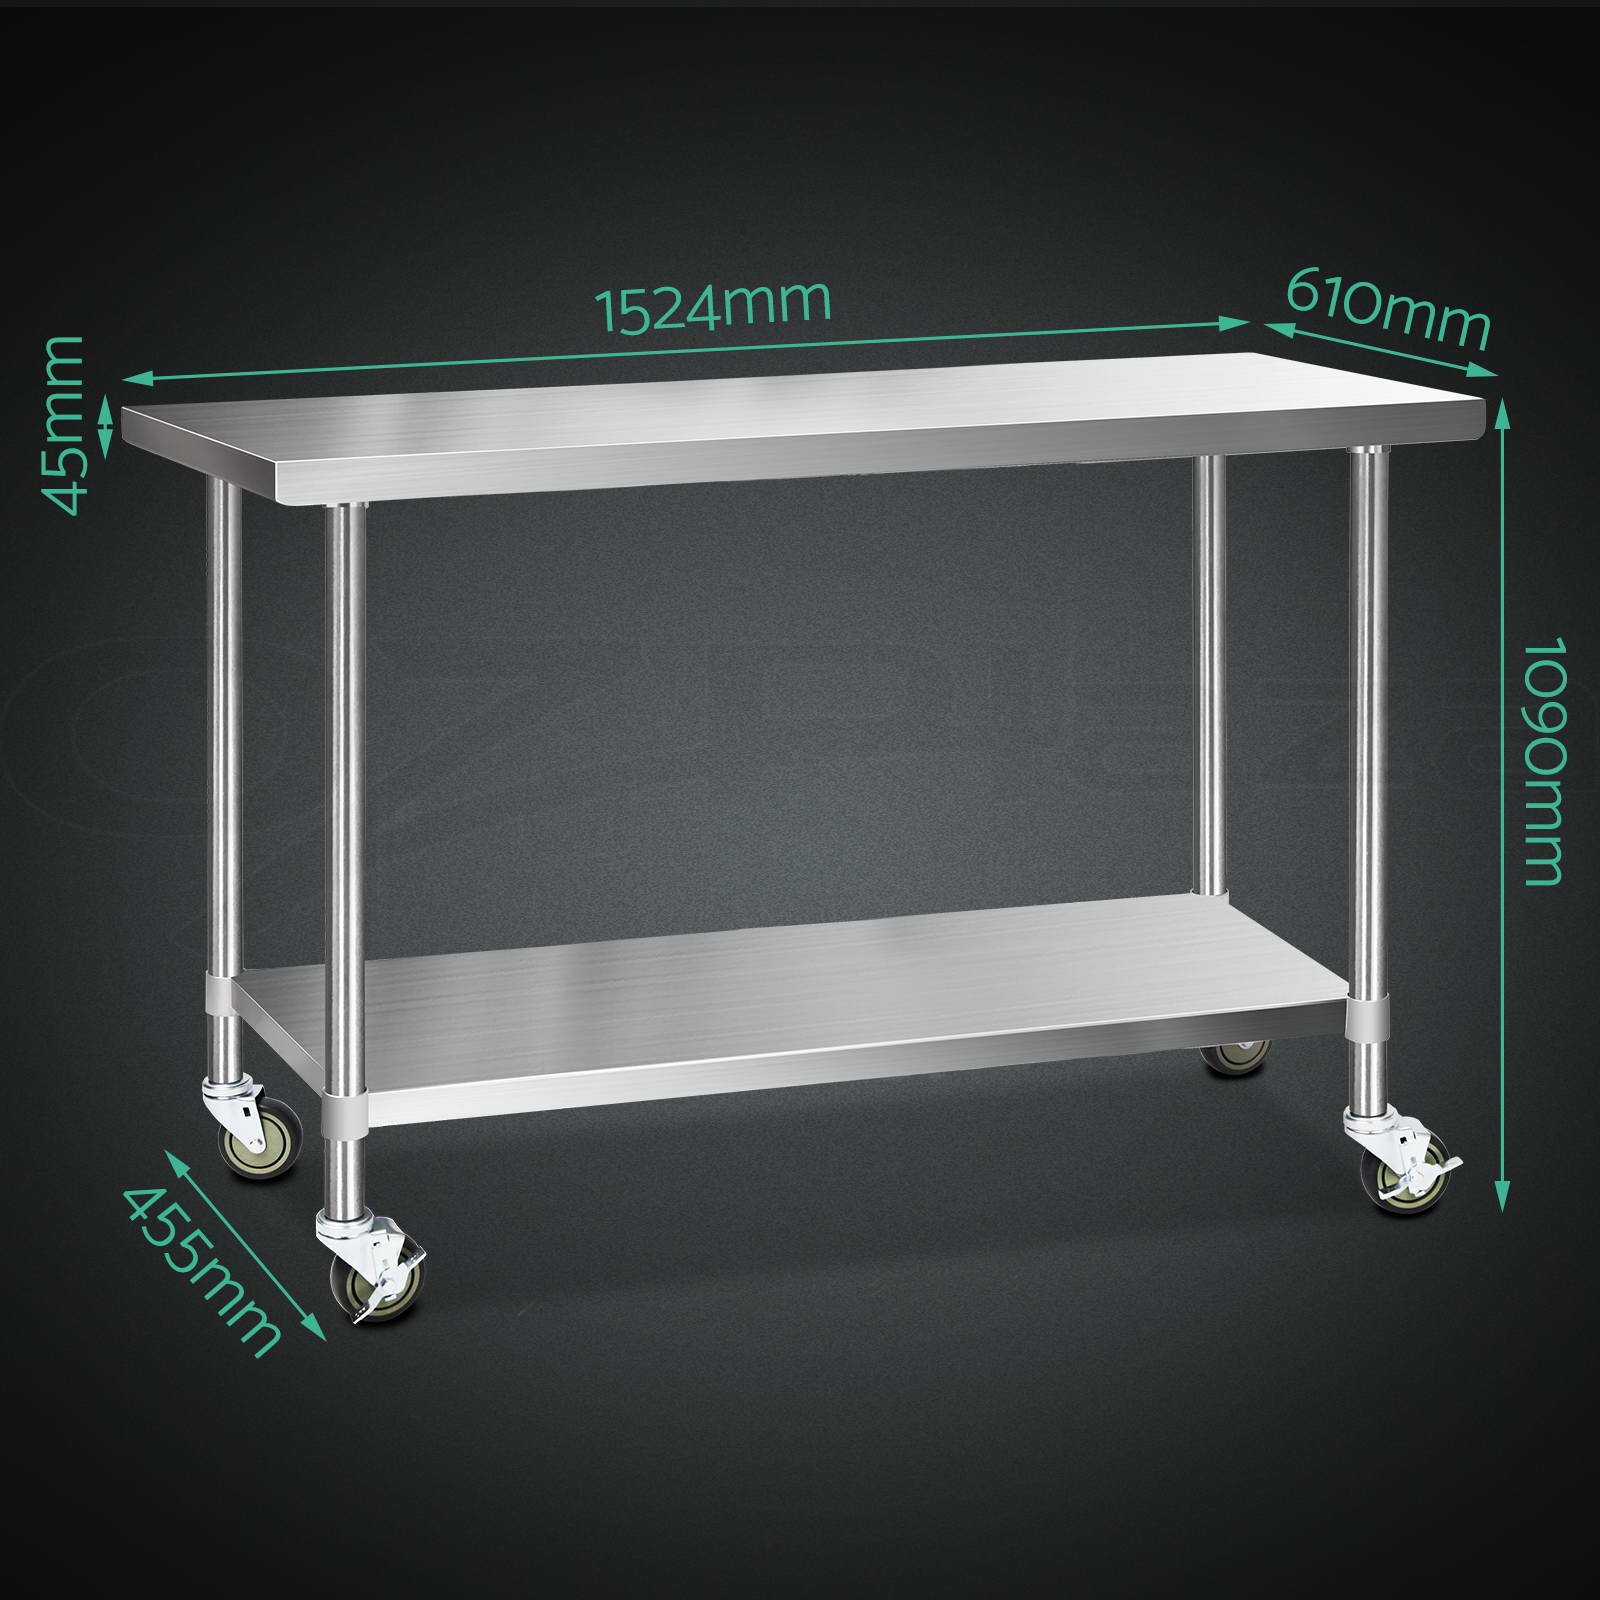 thumbnail 17 - Cefito 304 Stainless Steel Kitchen Bench Commercial Work Food Prep Table Wheels